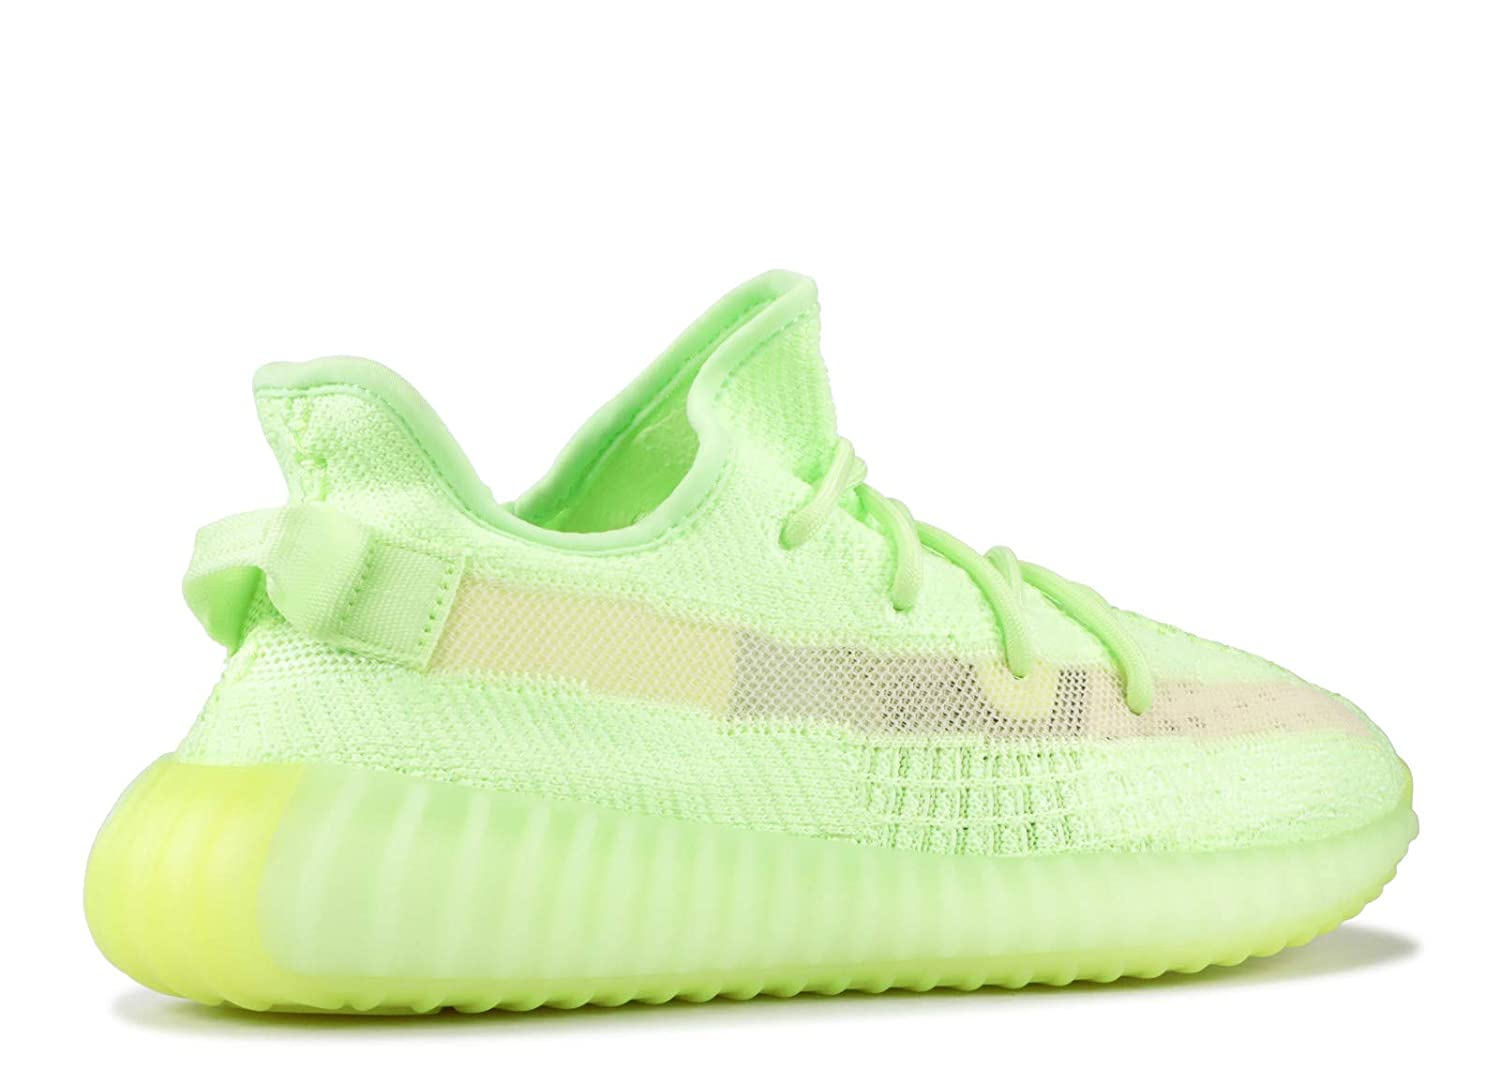 adidas + Kanye West Release Yeezy 350 Glow for Adults and Kids